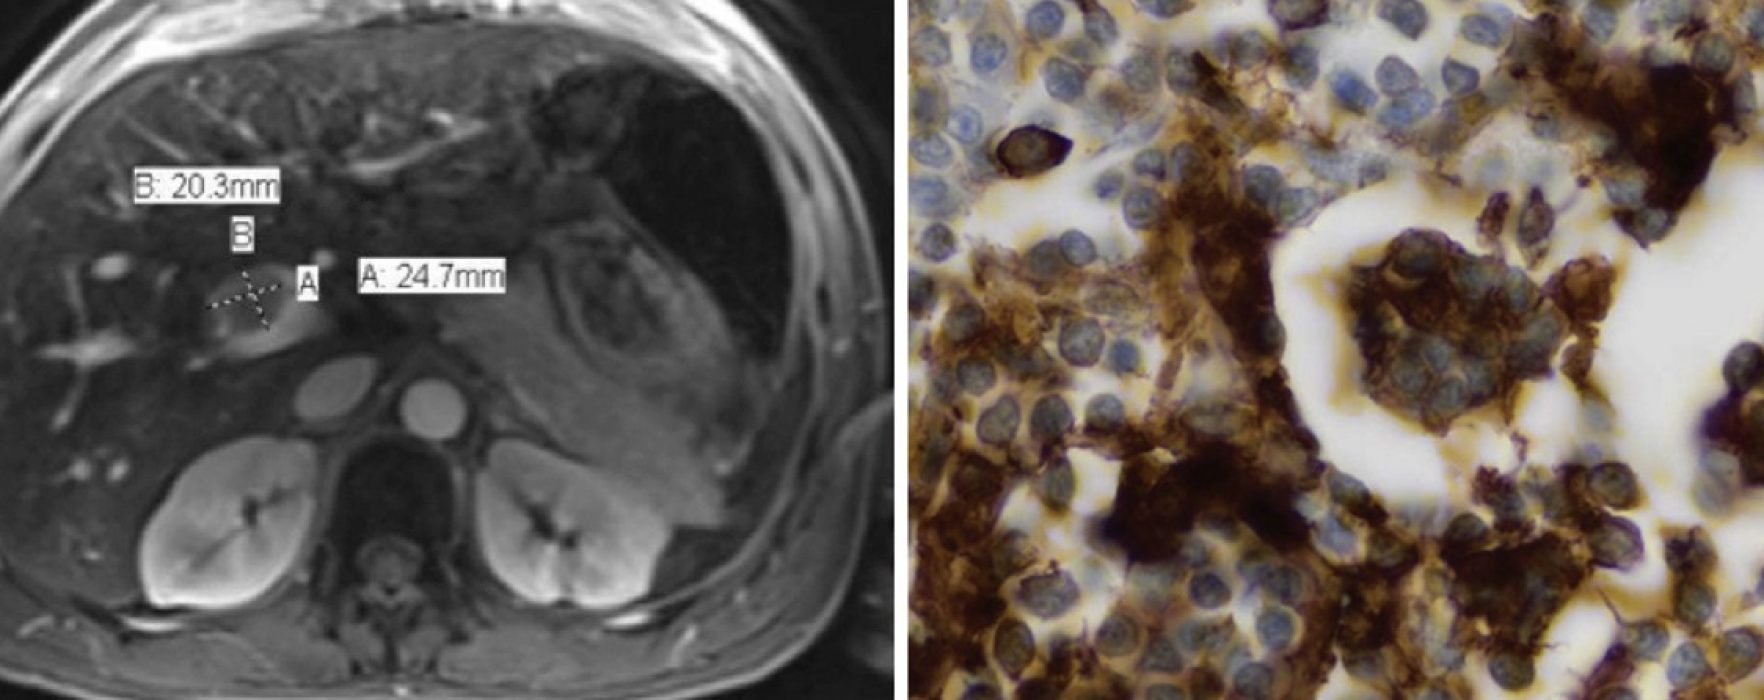 A Patient Thought to Have Cholangiocarcinoma Found to Have Rosai-Dorfman Disease